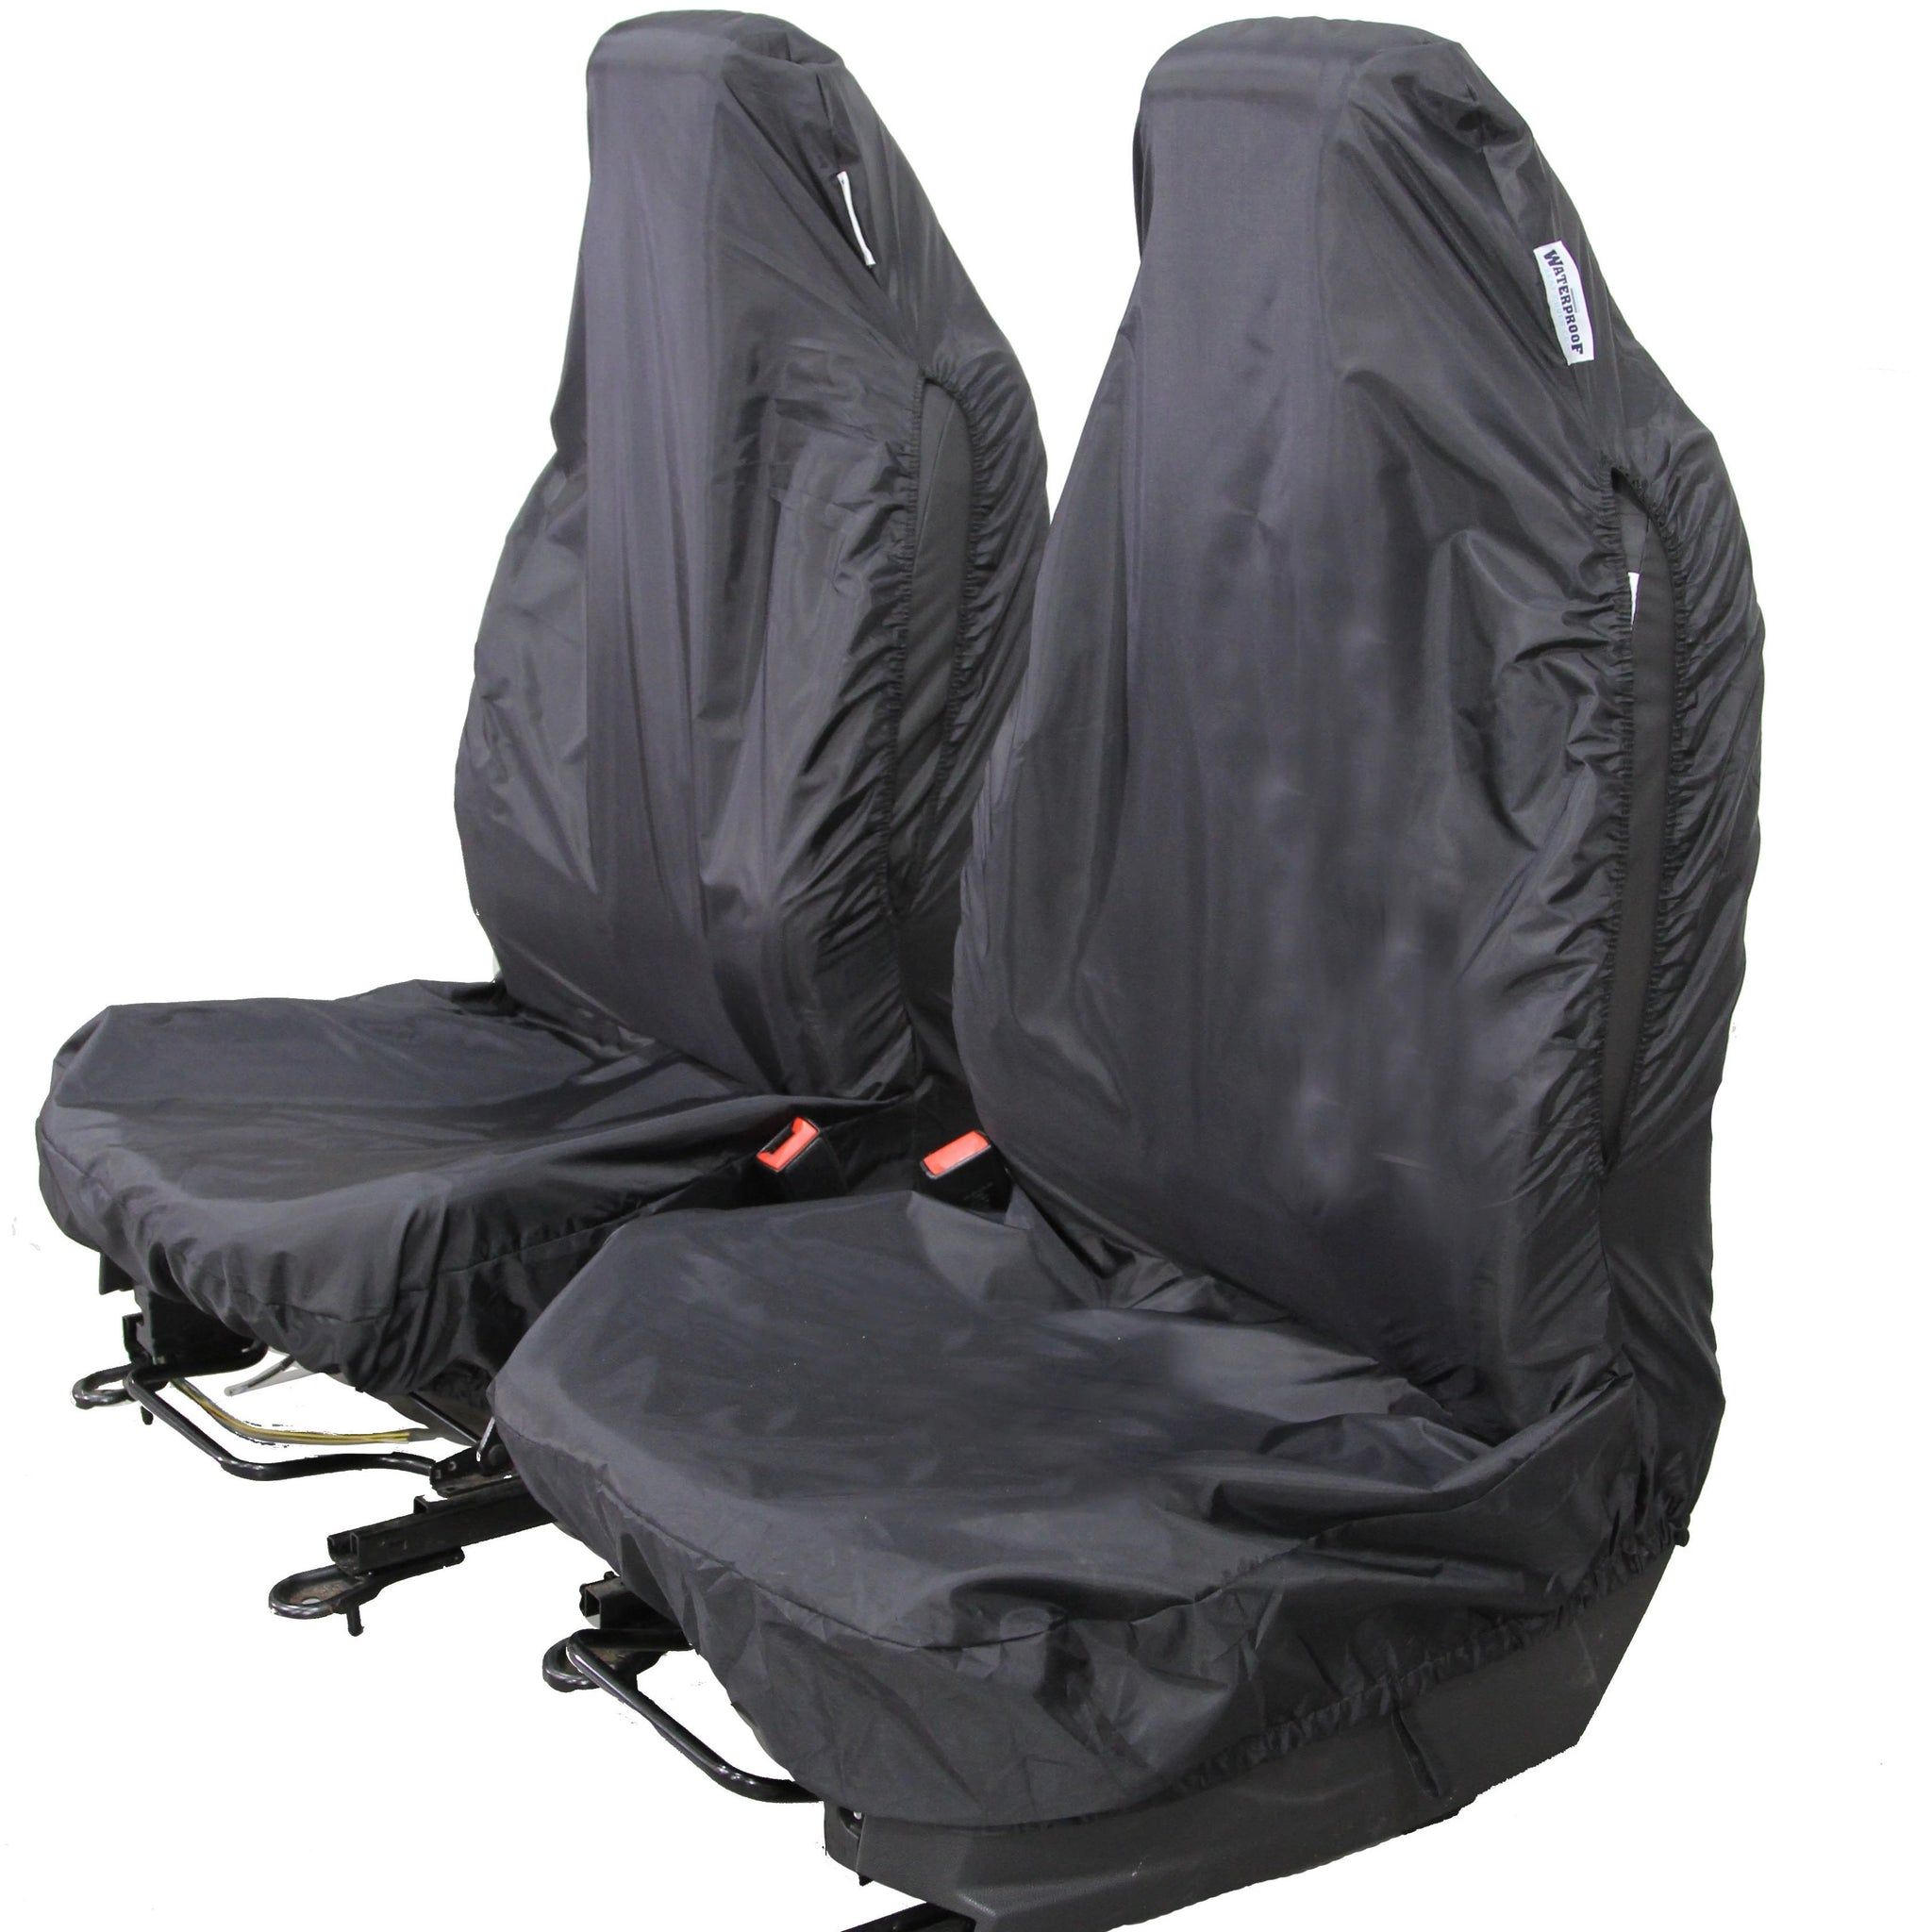 2x CAR FRONT SEAT COVERS PROTECTOR For Ford Transit Connect